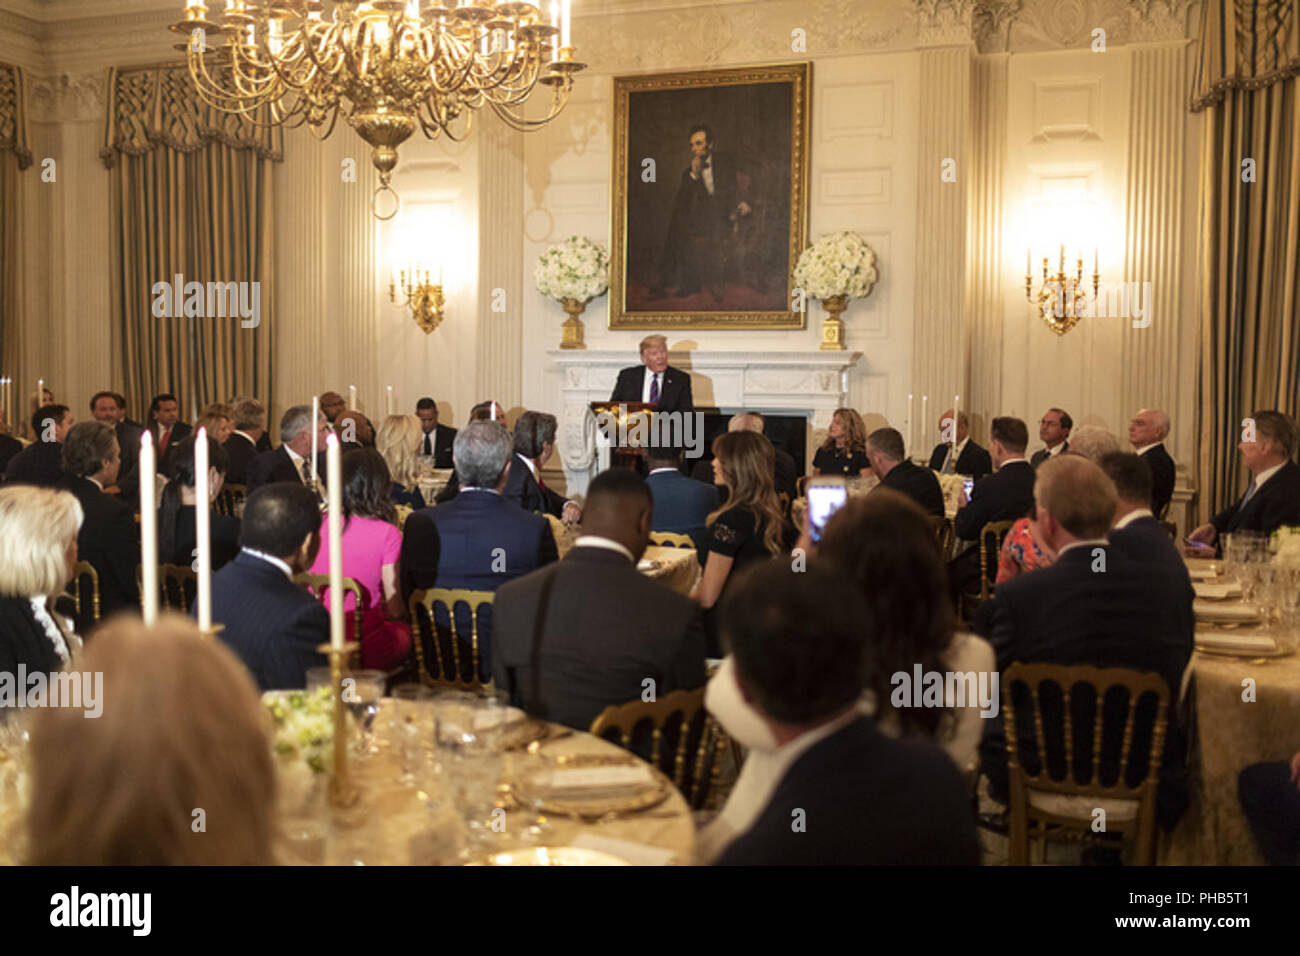 President Donald J Trump Addresses Guests On Monday August